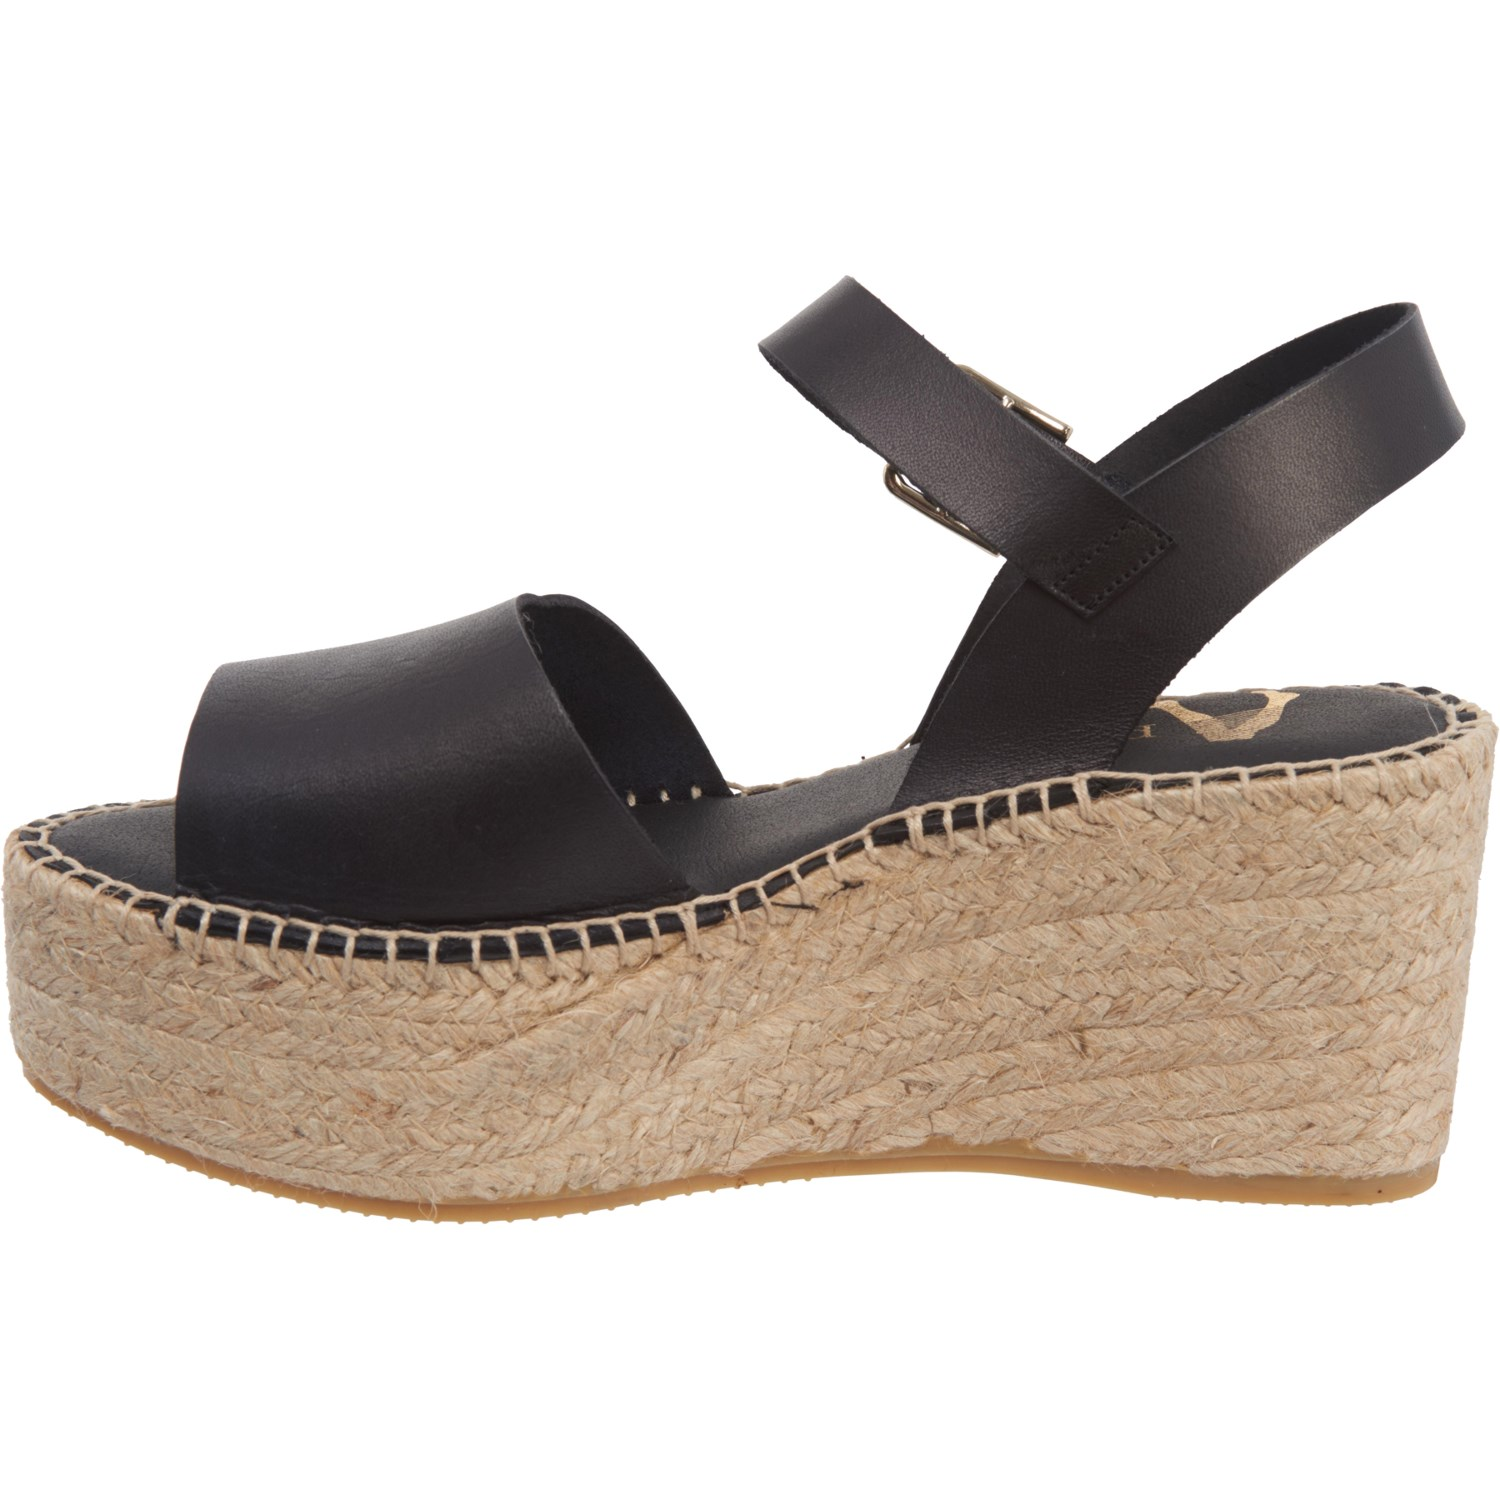 cbc7c83fae3 PASEART Made in Spain Open-Toe Wedge Espadrilles (For Women) - Save 67%